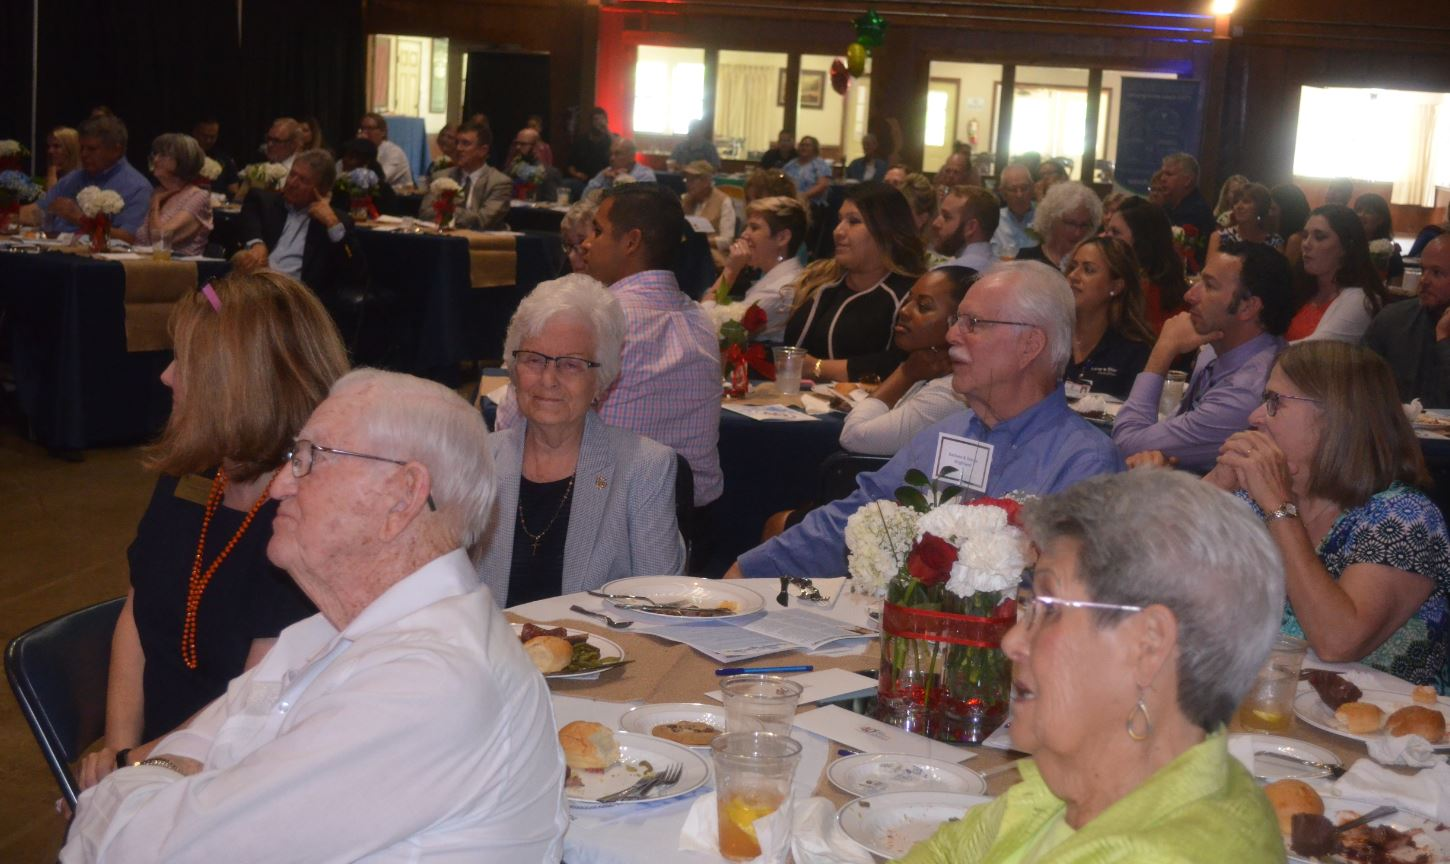 Seated facing forward are Barbara and George Brightwell who were honored as founders of LifeSteps with other members also seated.